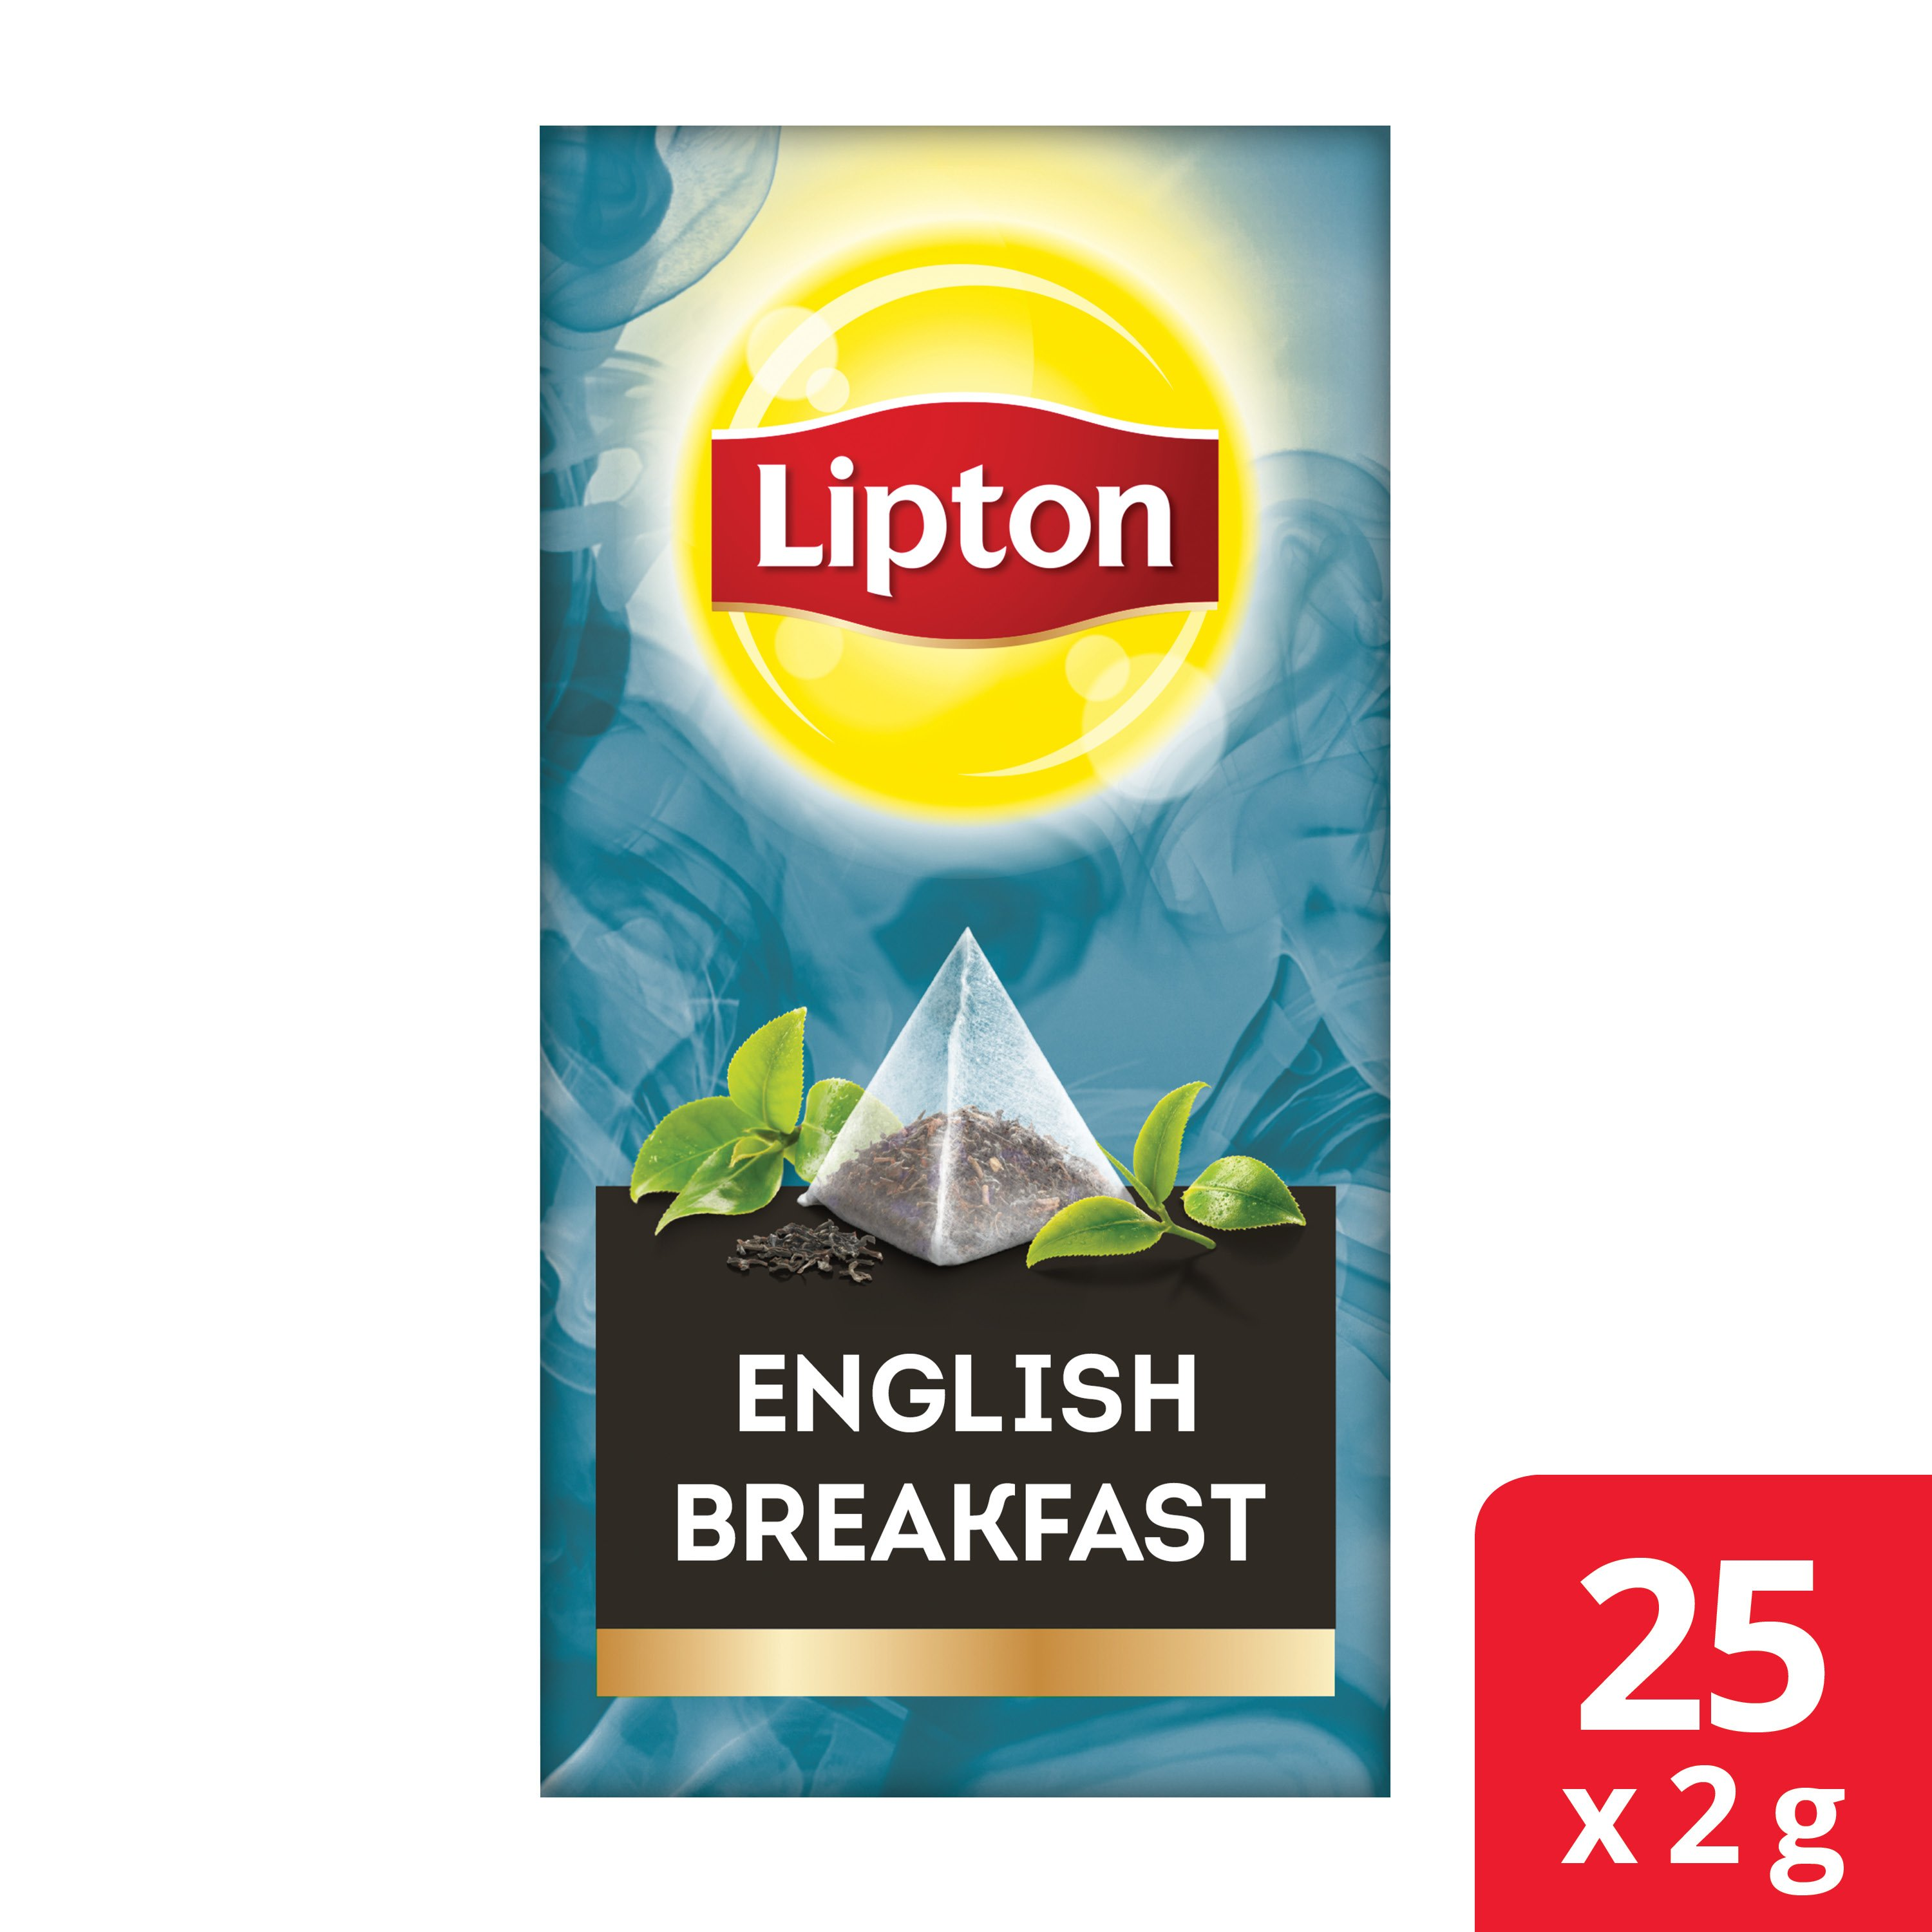 Lipton English Breakfast Tea -